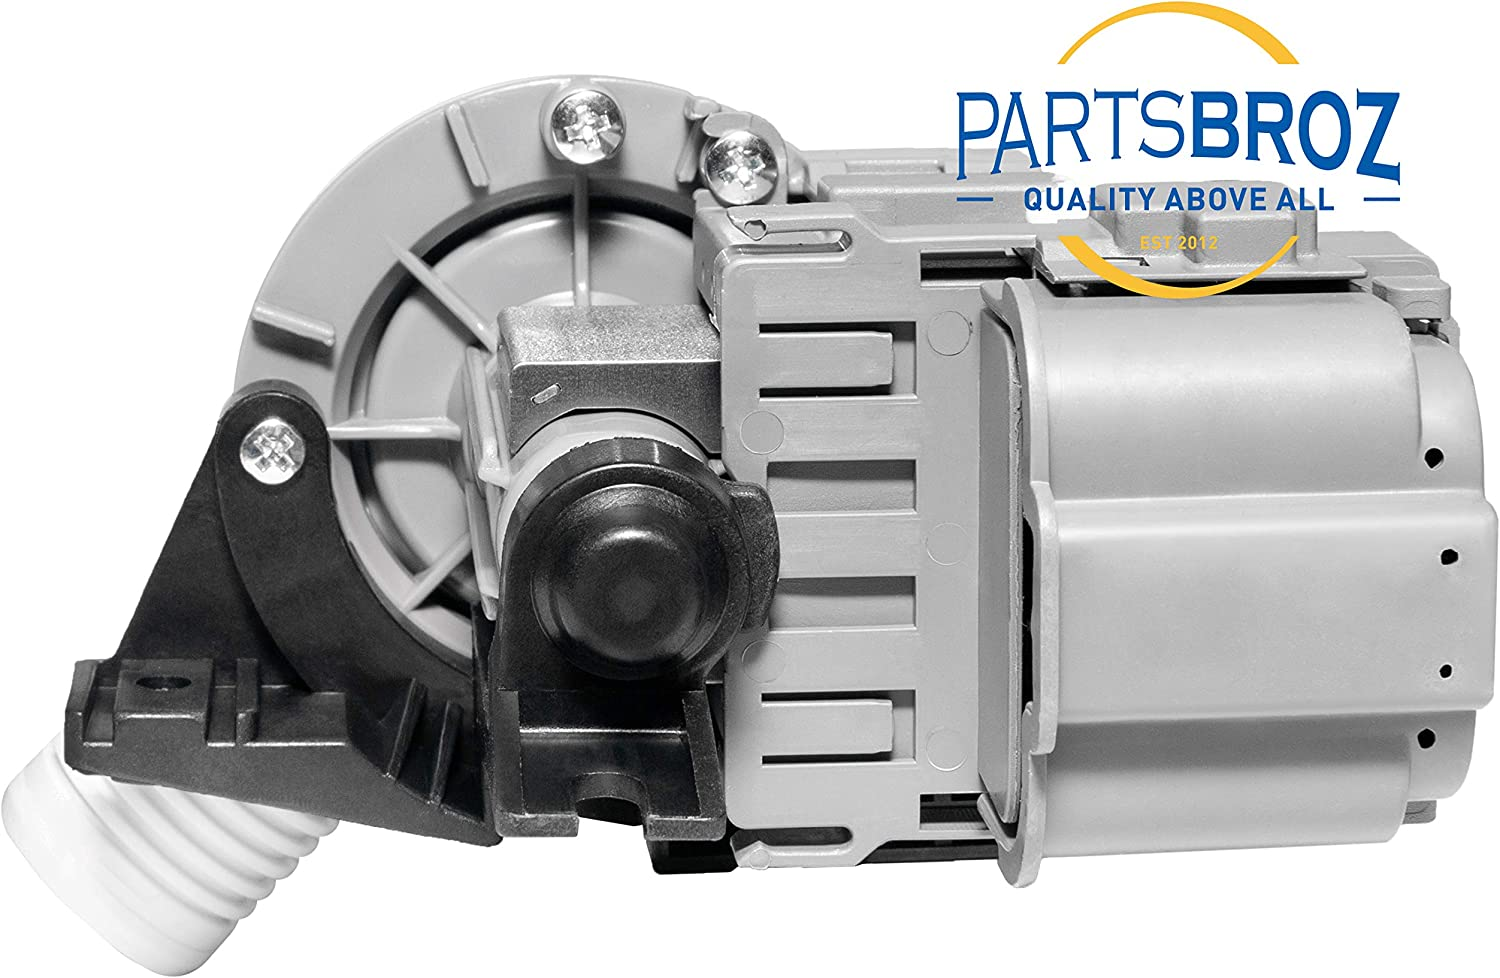 W10536347 Drain Pump Compatible with Whirlpool Washers by PartsBroz